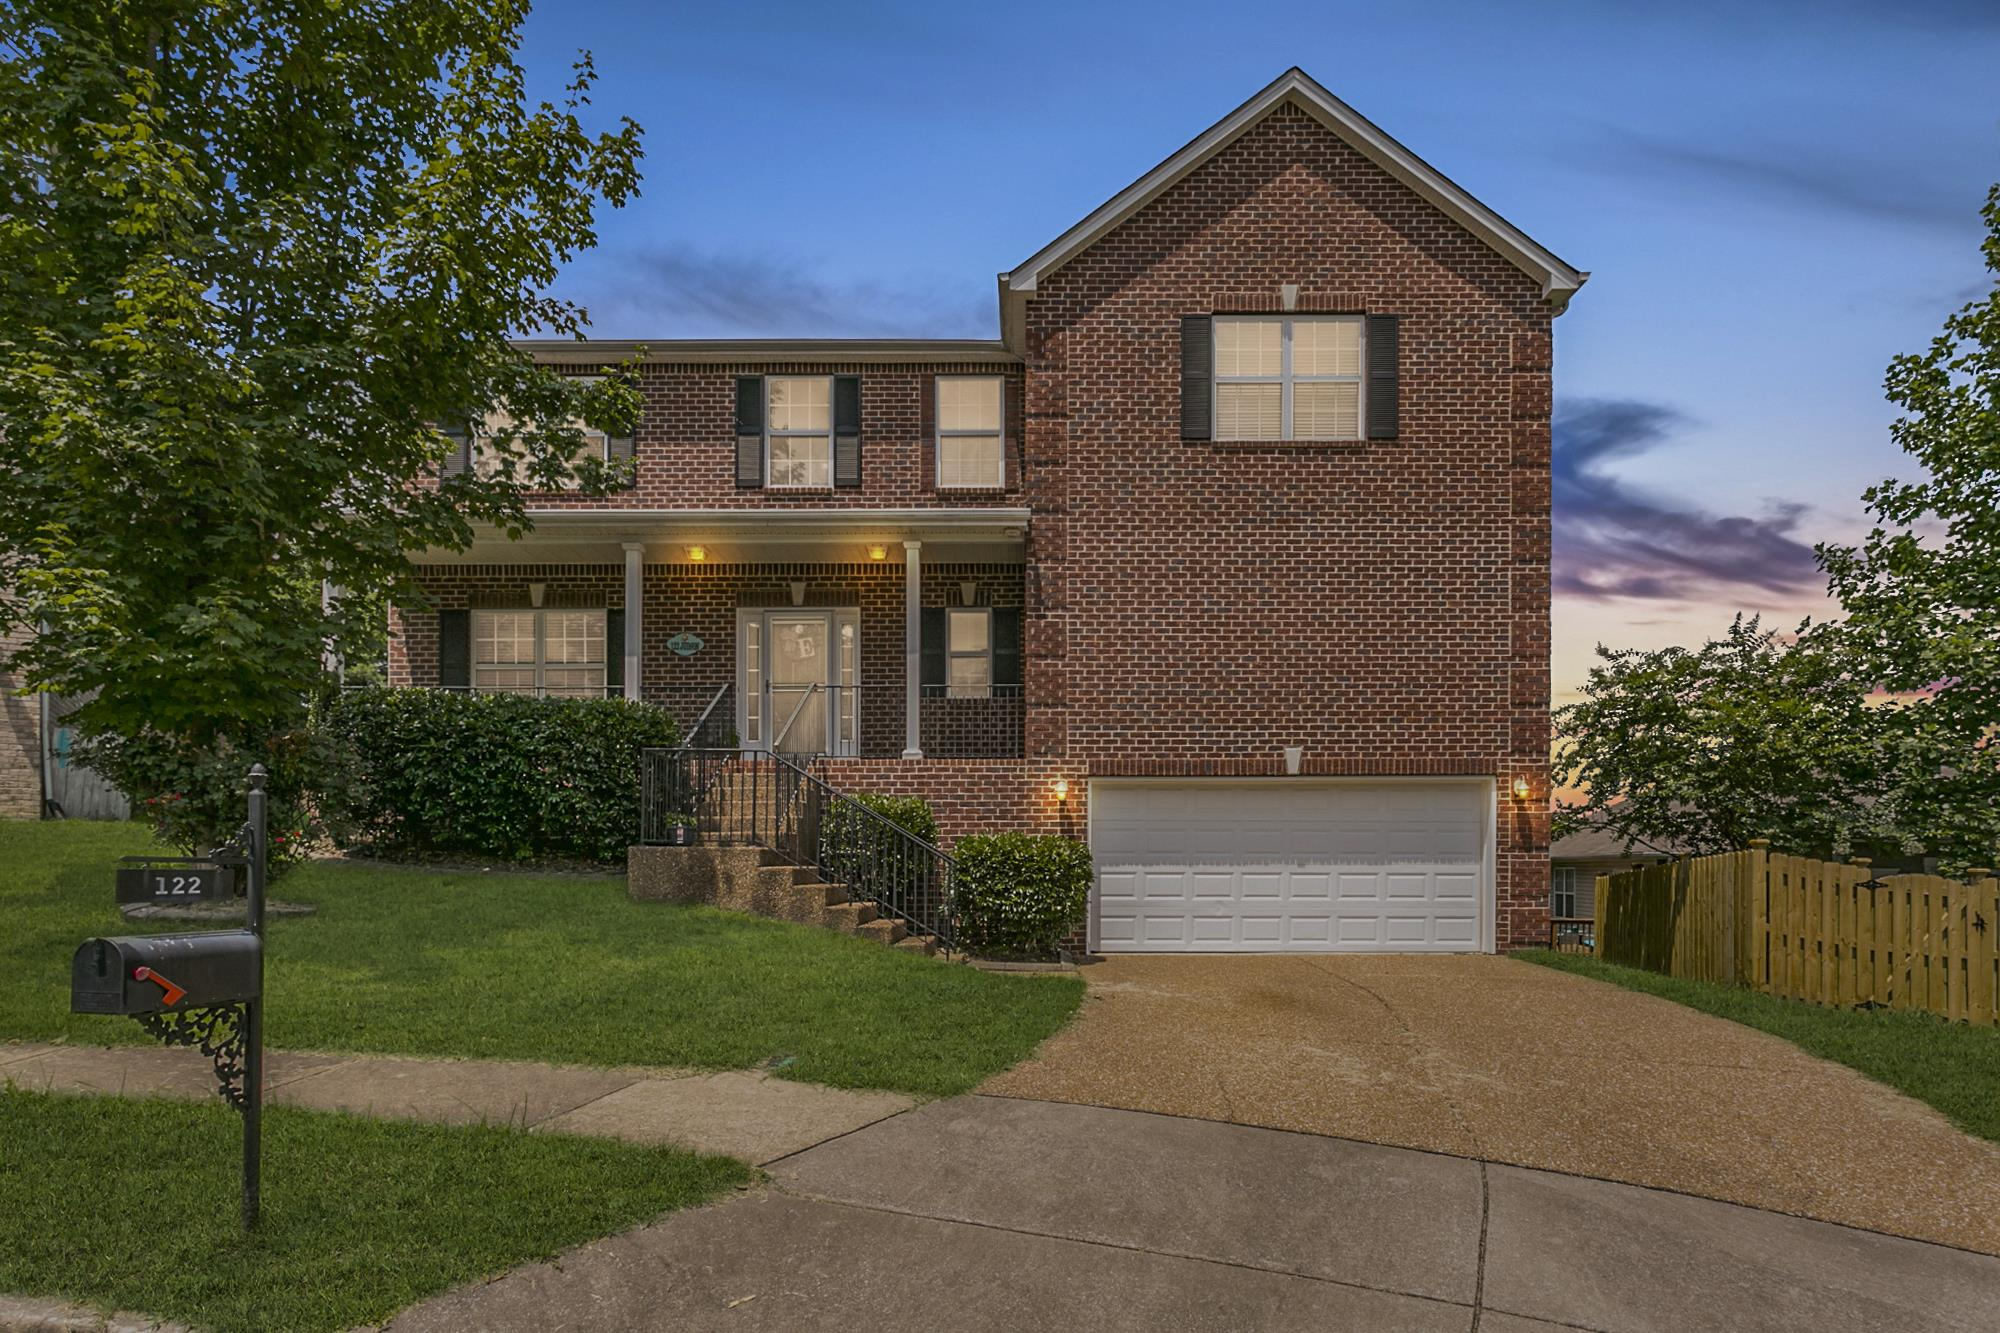 122 Judson Dr, Hendersonville in Sumner County County, TN 37075 Home for Sale